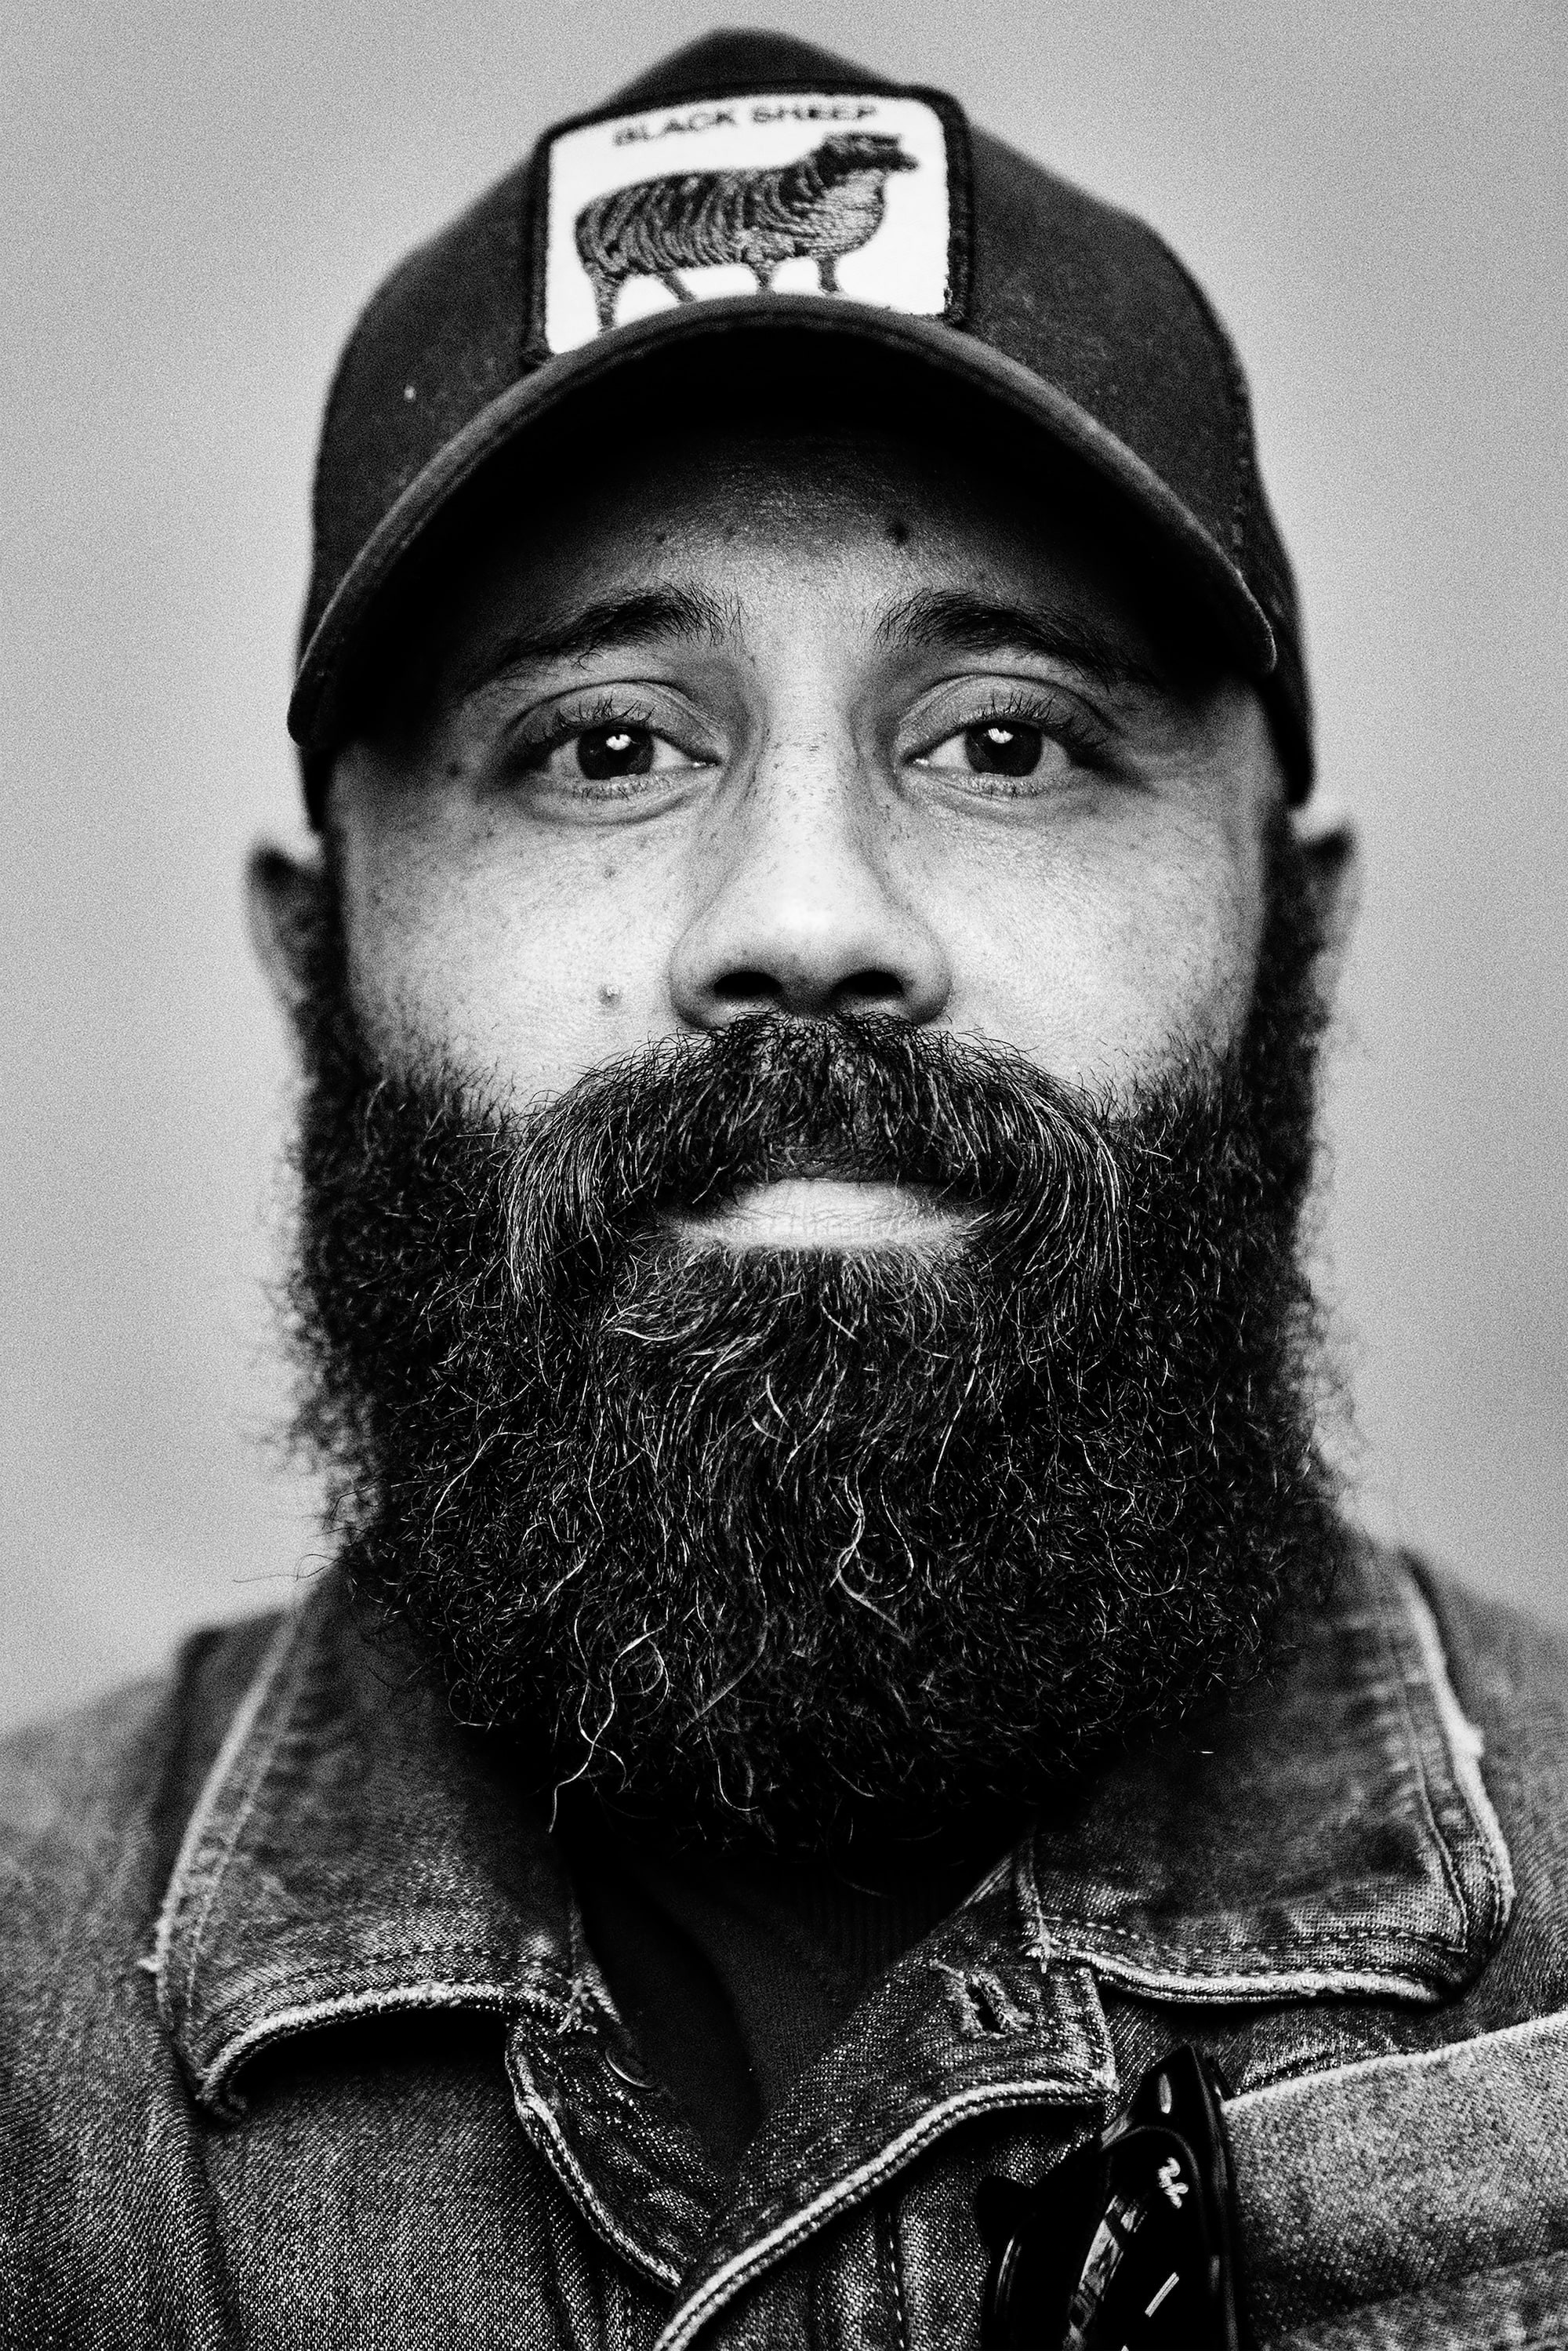 brendan de clercq sony alpha 7RM3 portrait of a man with a full beard wearing a baseball cap